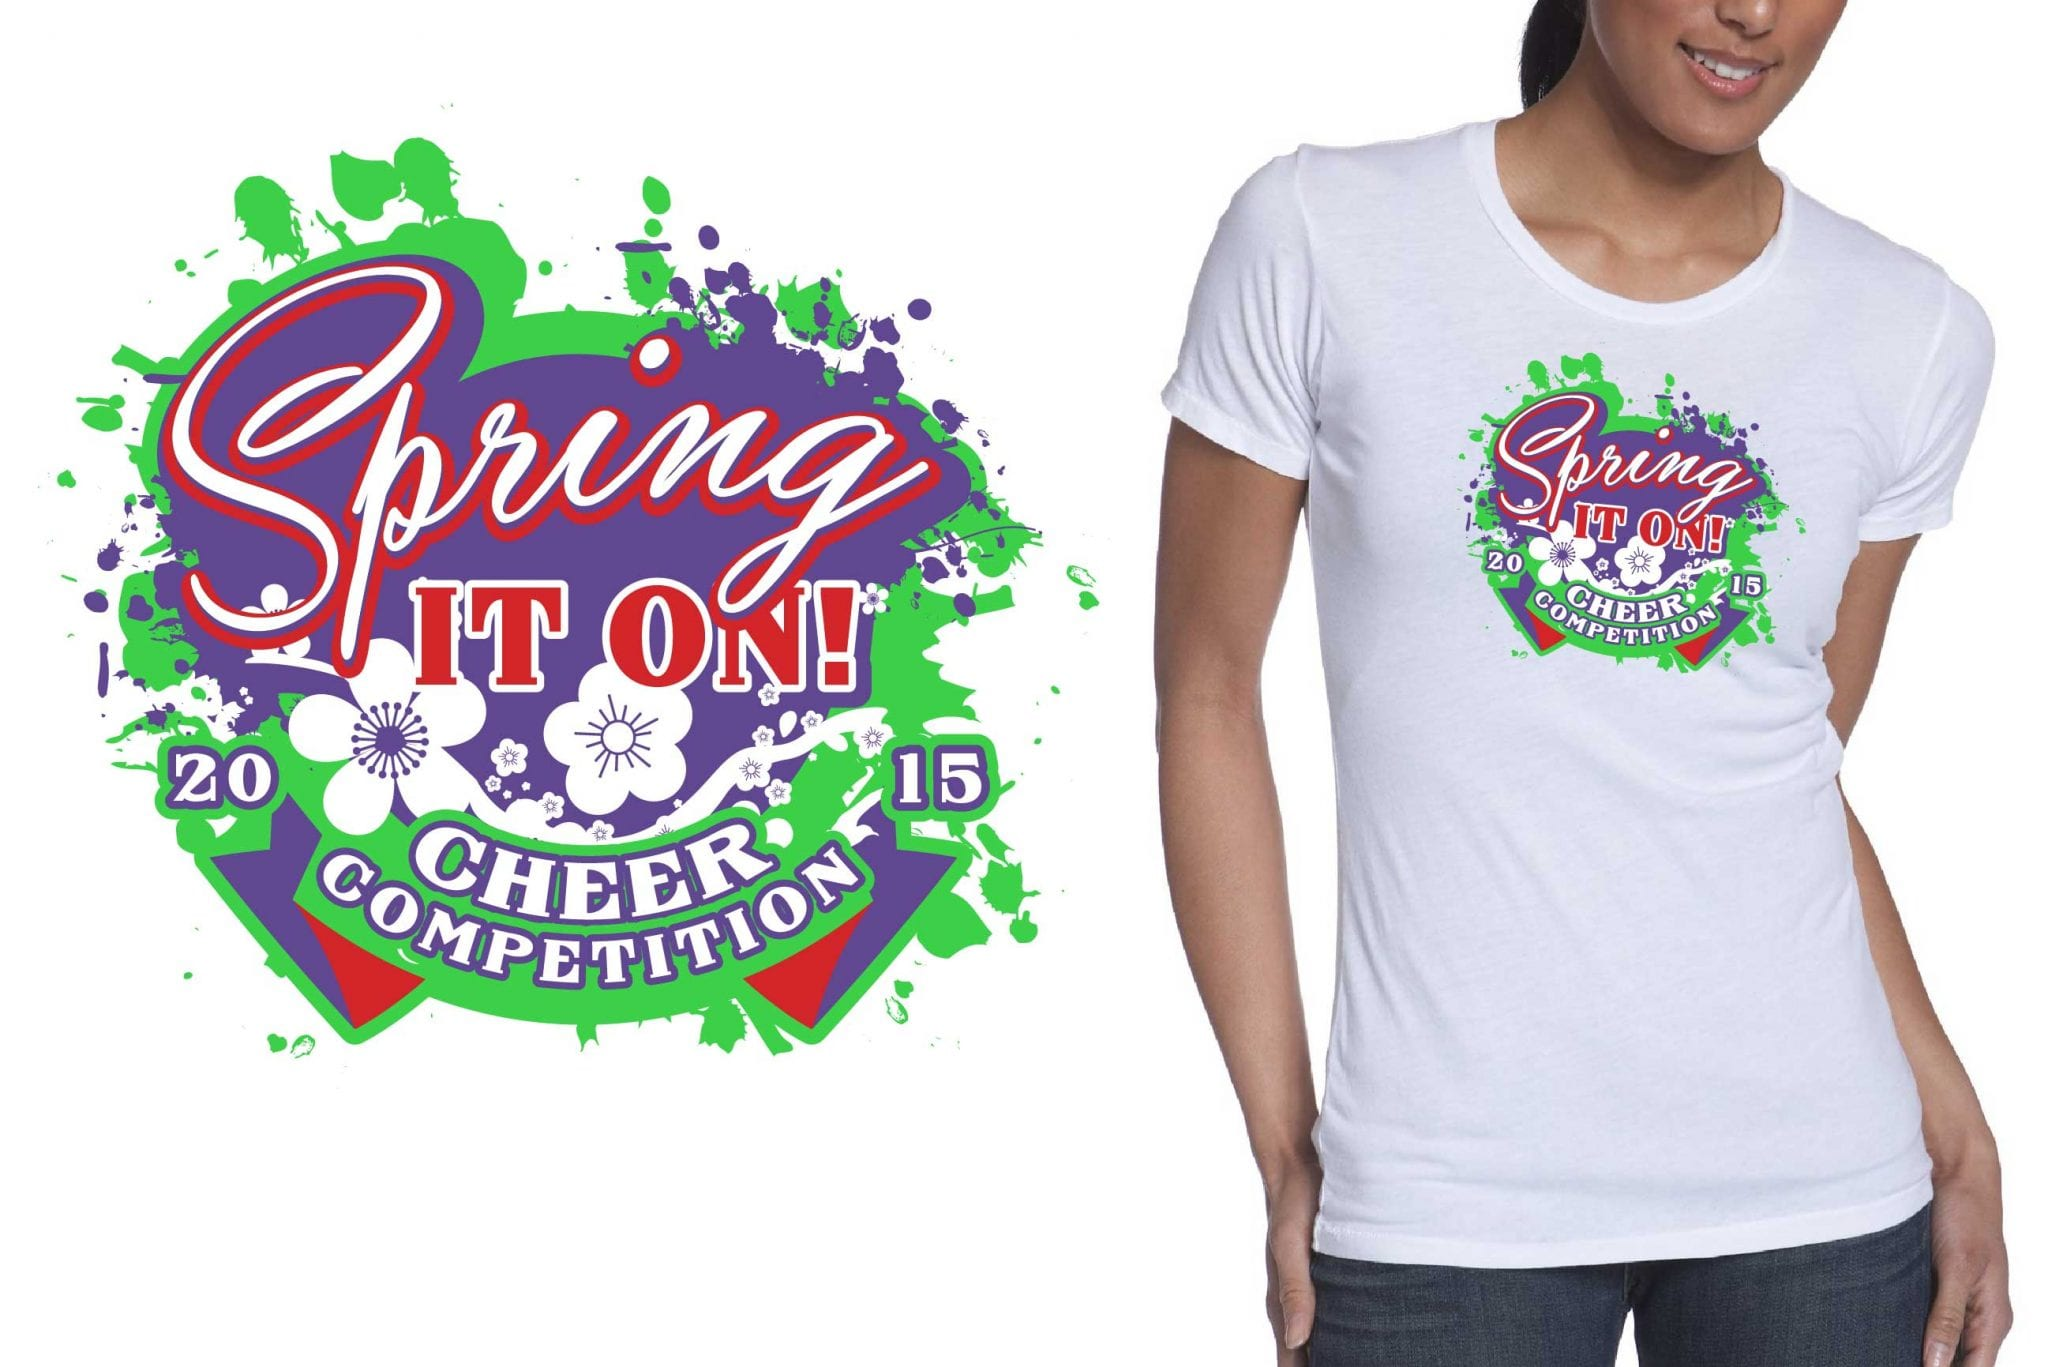 2015 Ultimate Cheer's Spring It On Cheer Competition tshirt design